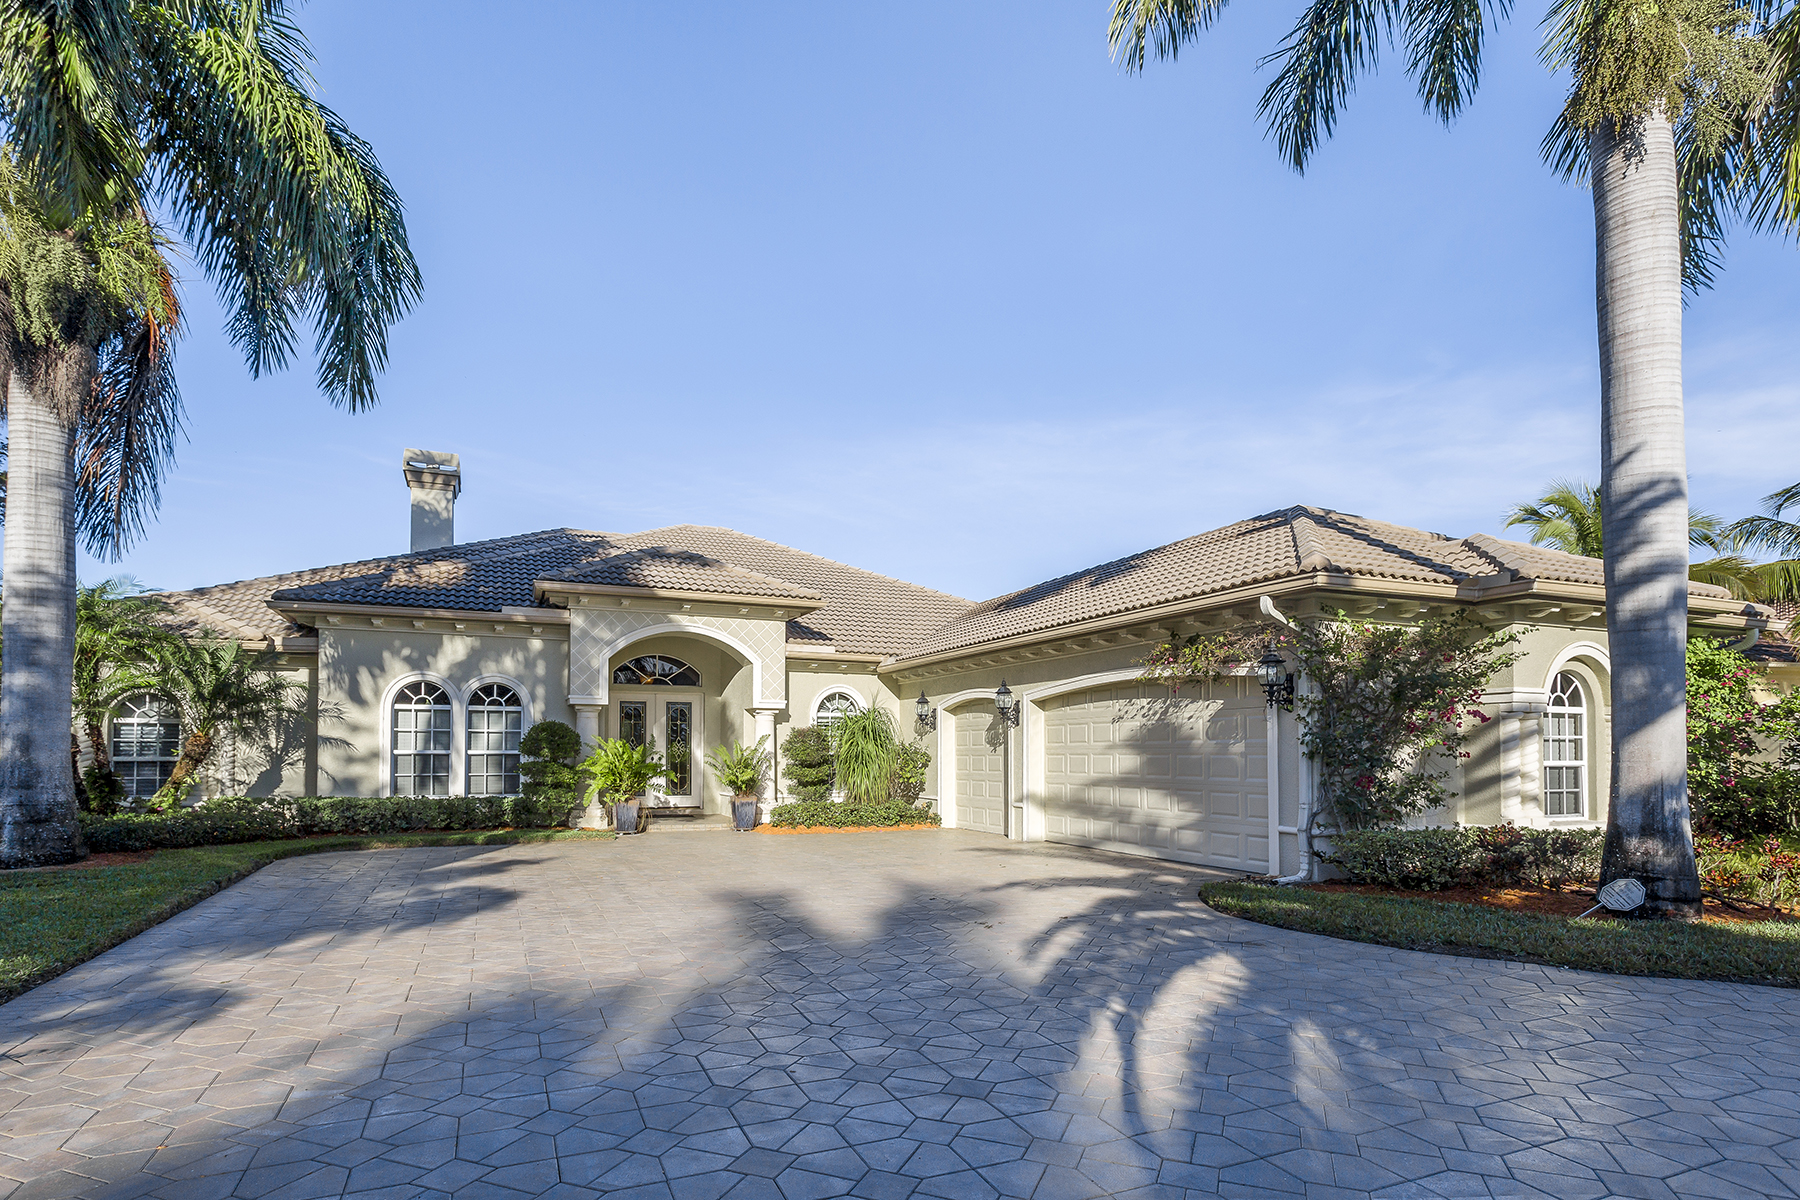 Single Family Home for Sale at LELY RESORT - CLASSICS PLANTATION ESTATES 7619 Palmer Ct Naples, Florida, 34113 United States